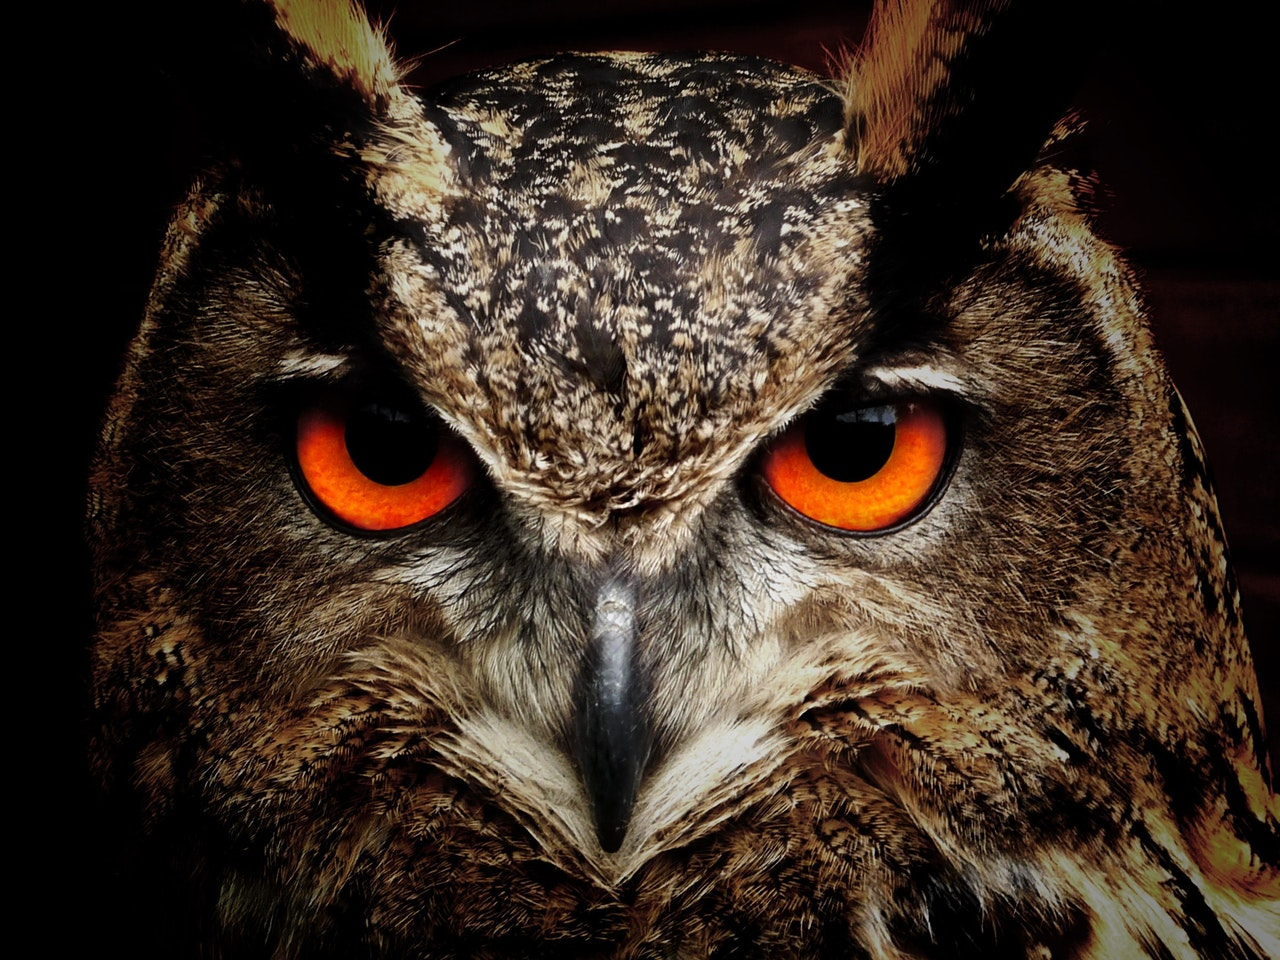 Owl - Leaving terrorists no place to hide online